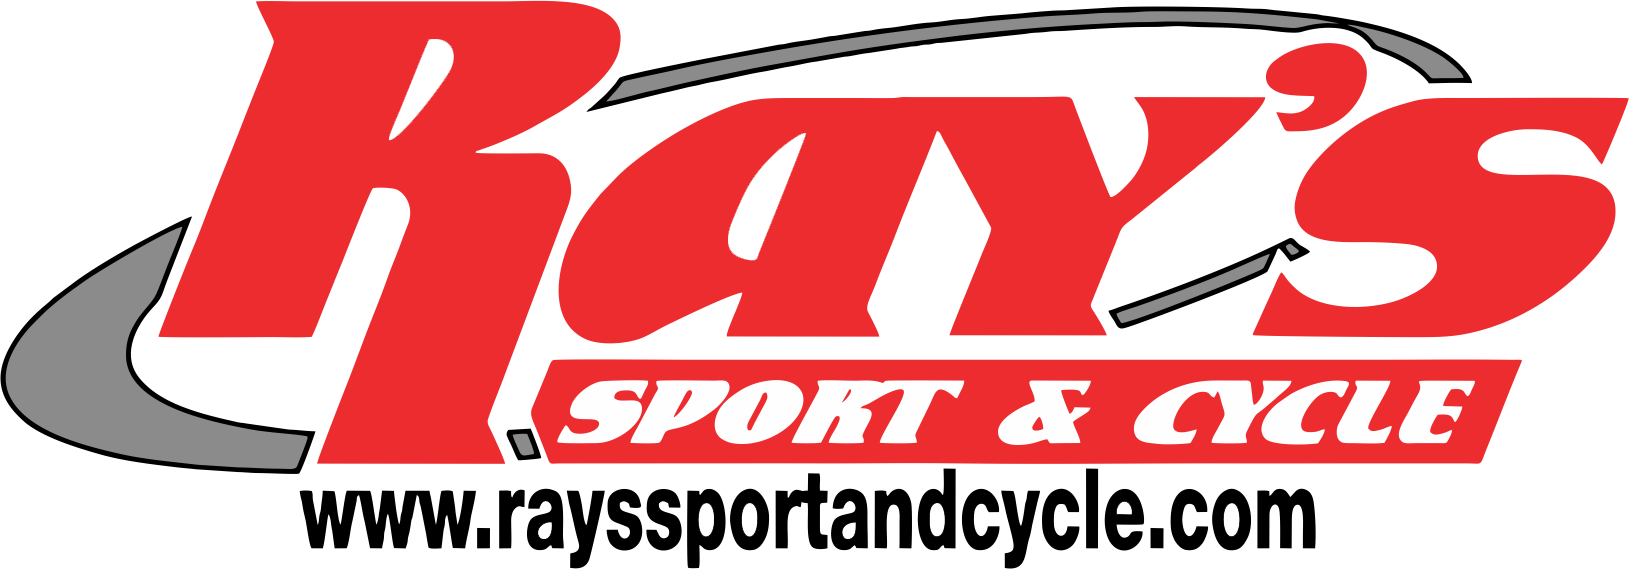 Rays Sport and Cycle logo